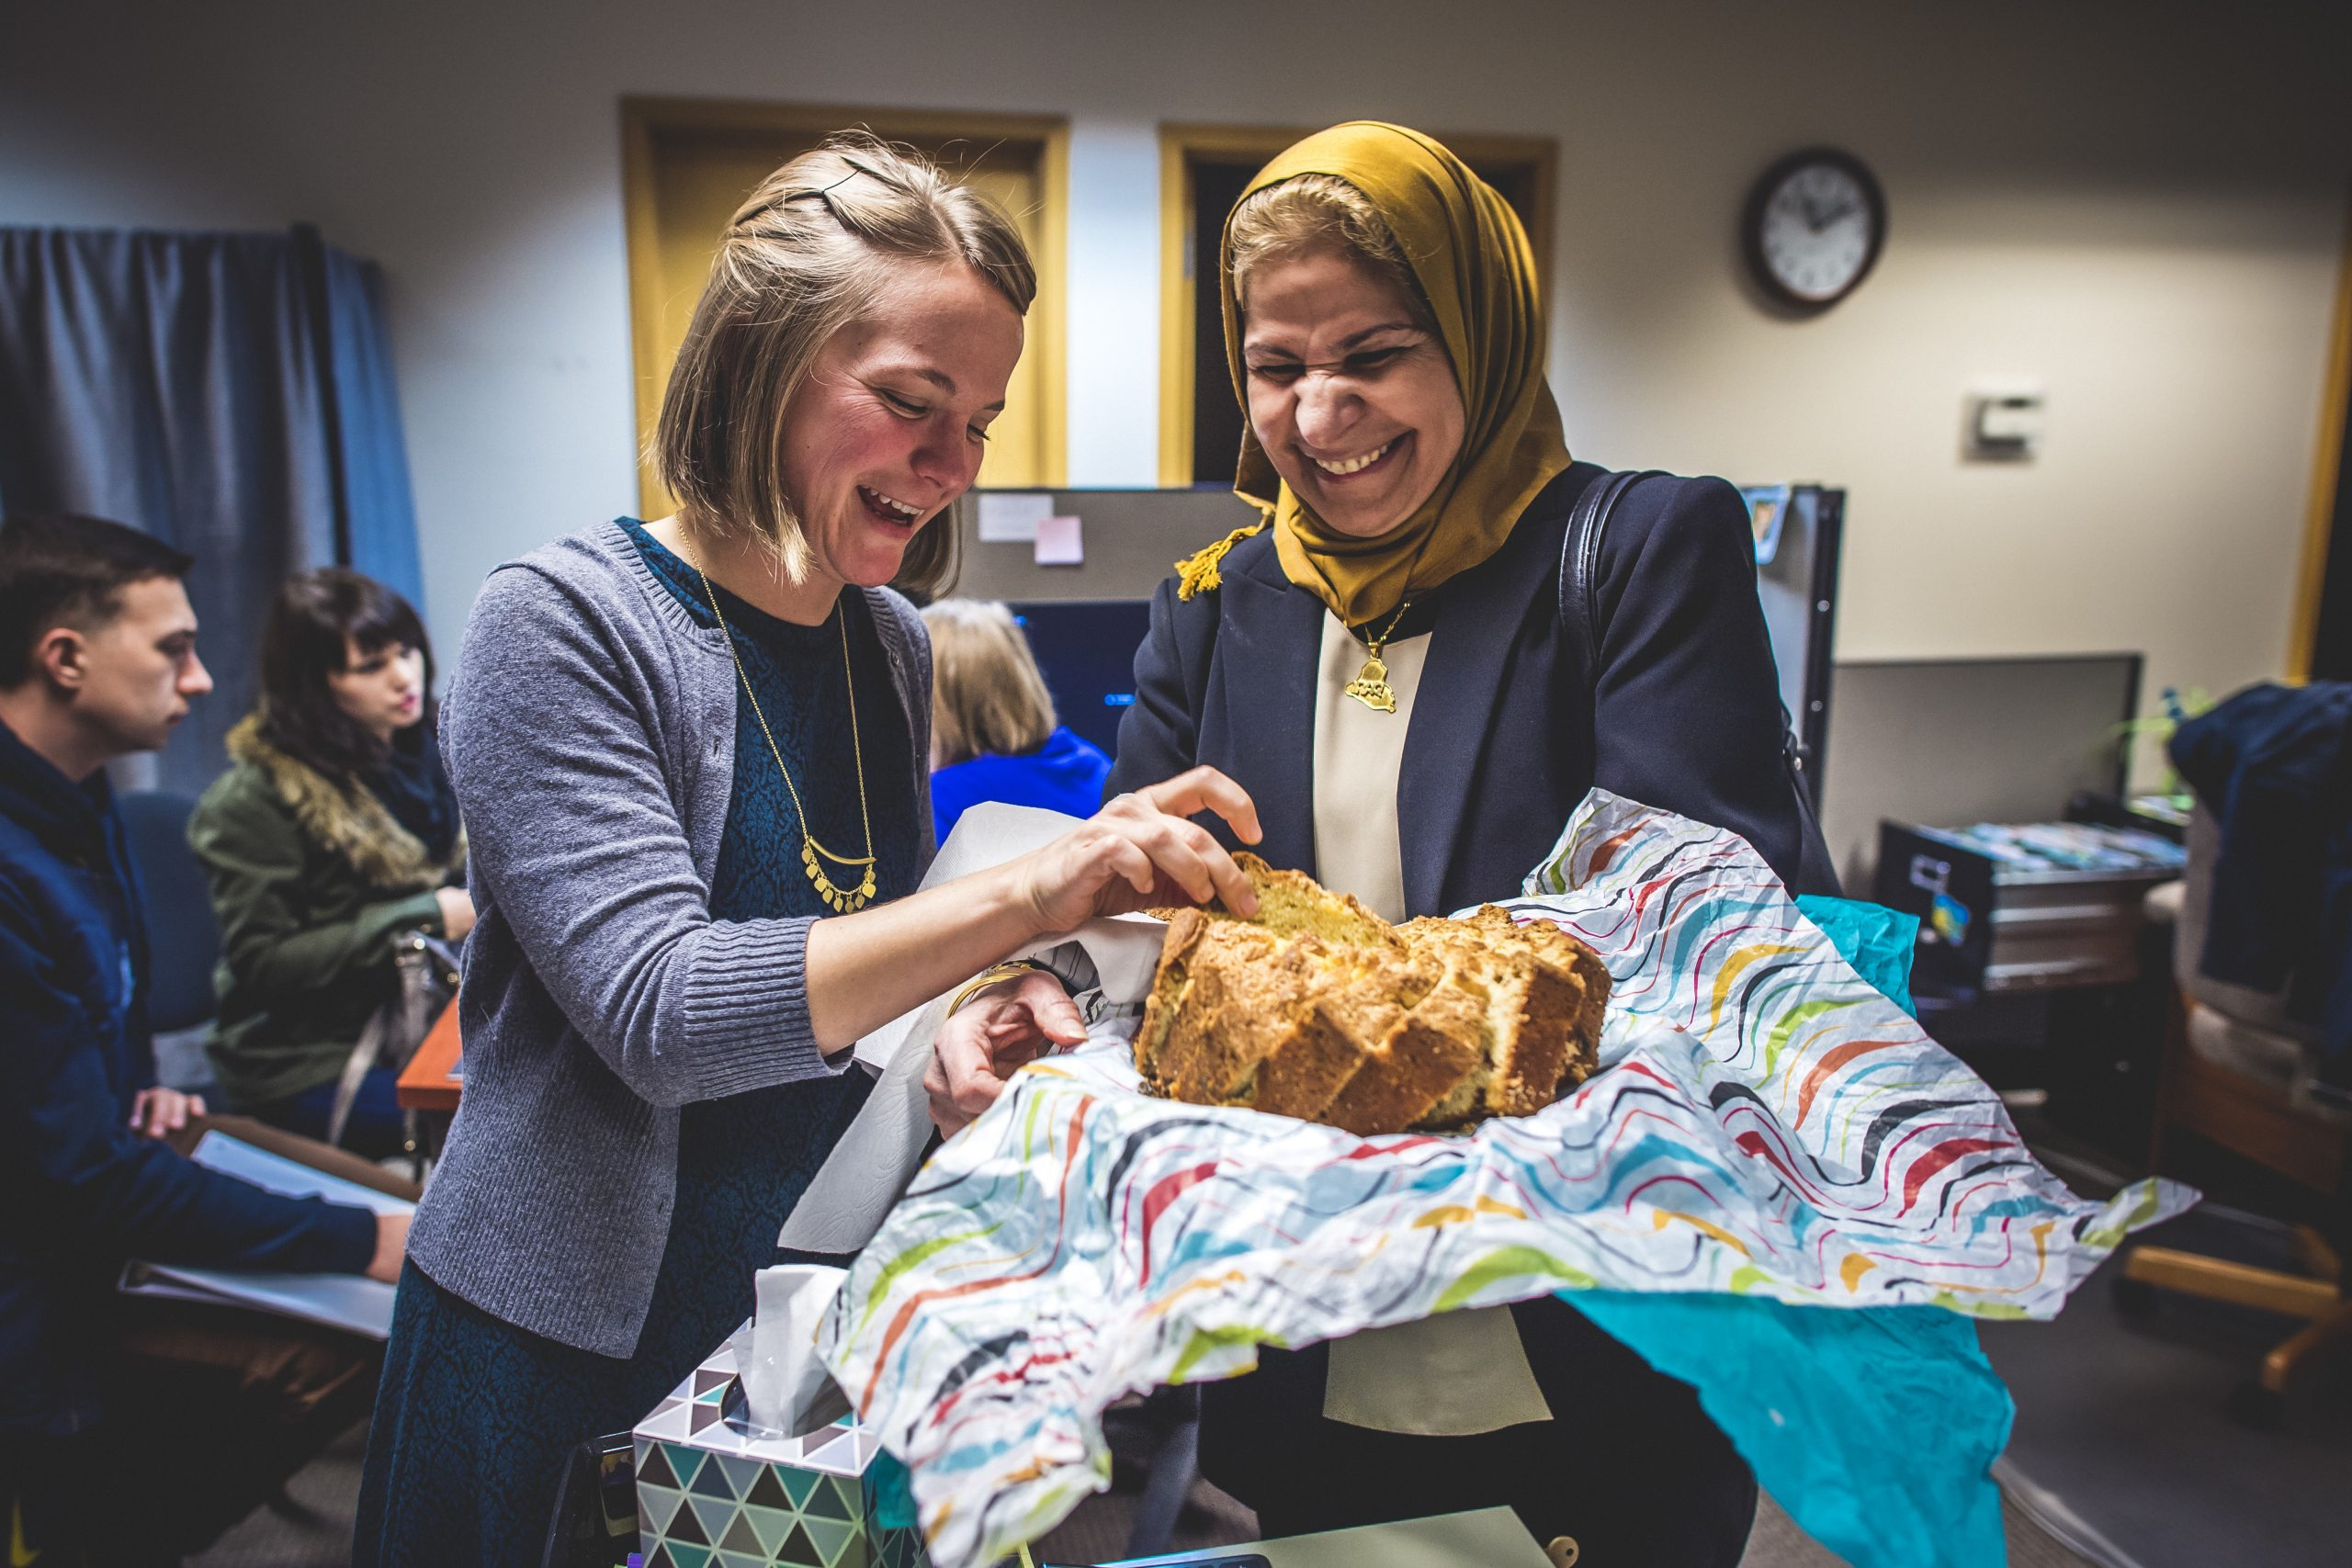 Two women smiling and laughing with baked bread